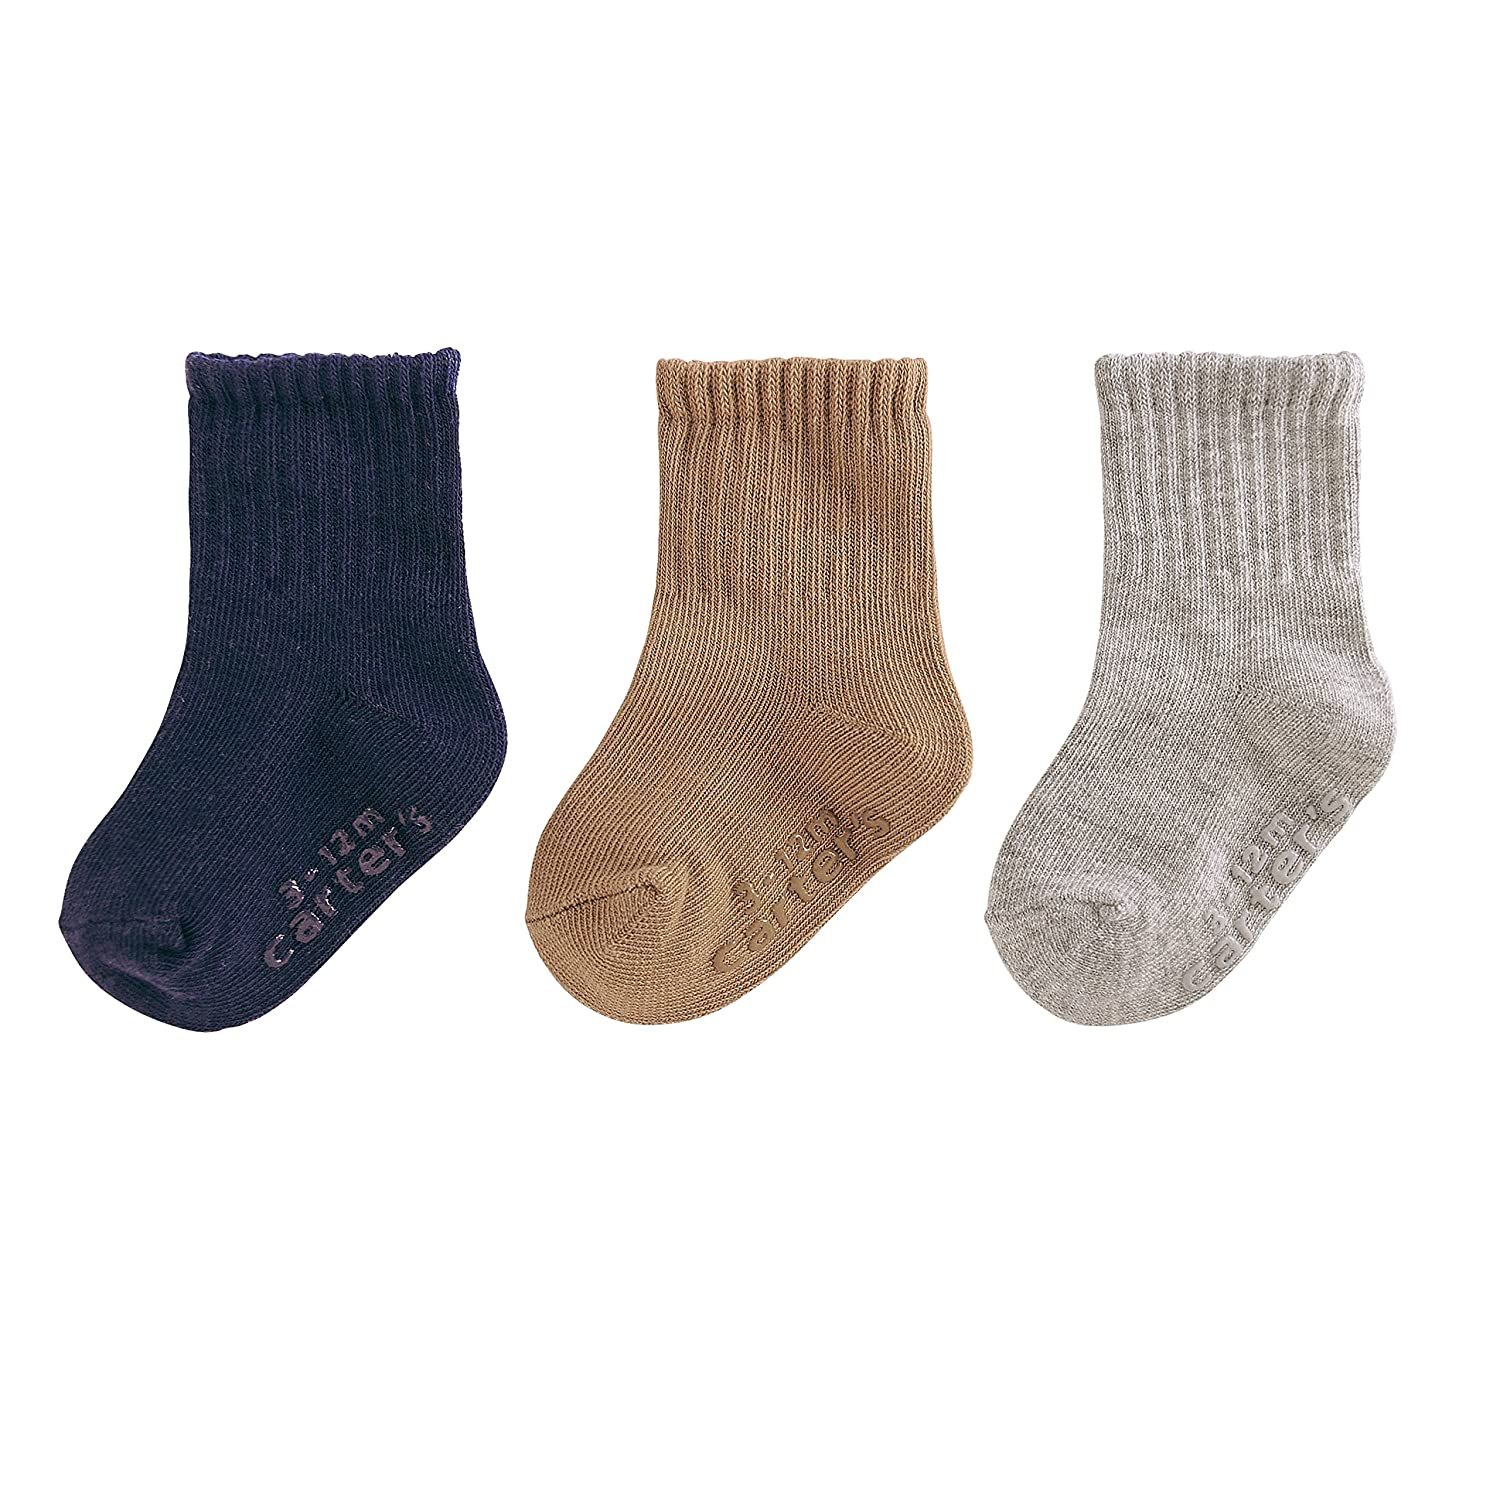 Pack of 3 Carters Boys Newborn Mix Patterns Socks